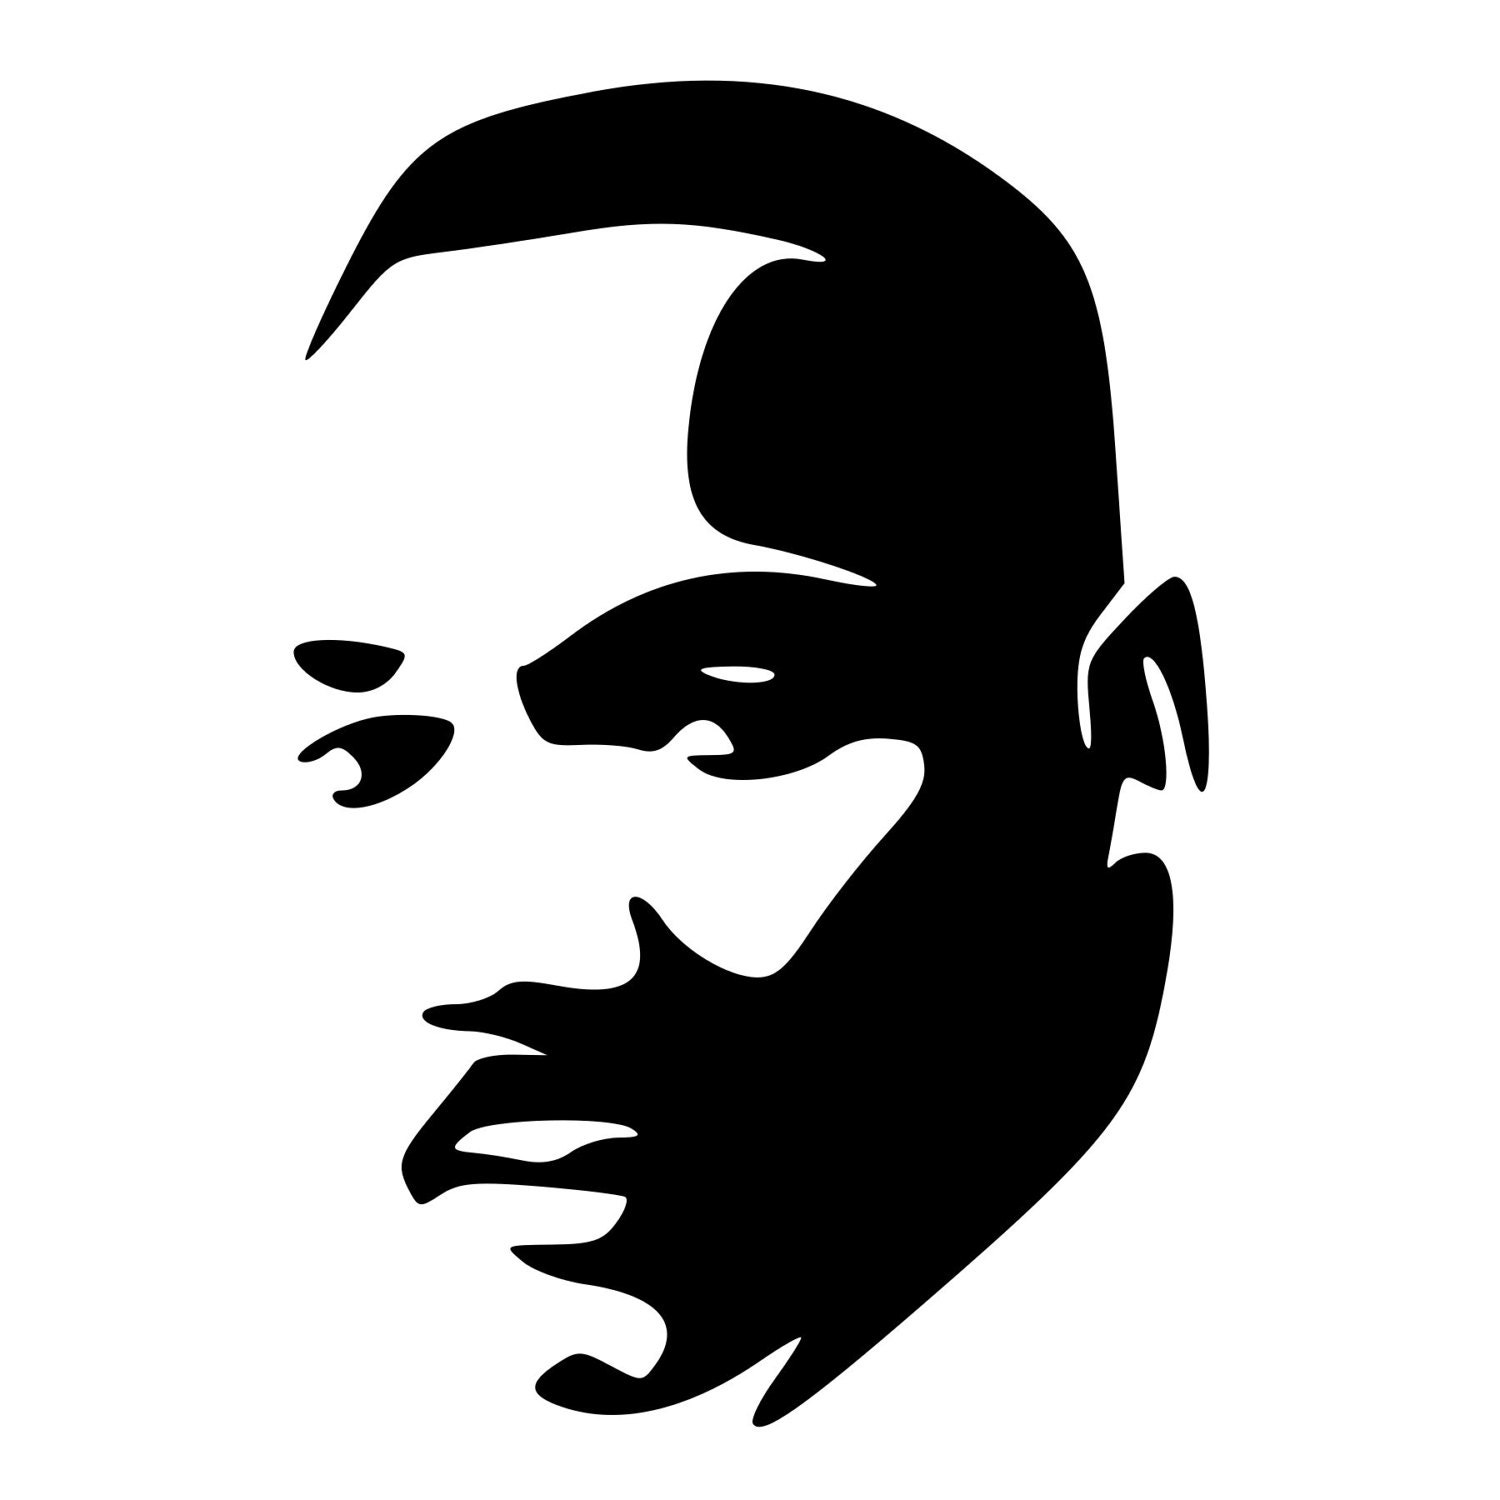 martin luther king silhouette www pixshark com images Pictures Harriet Tubman Slaves harriet tubman clipart